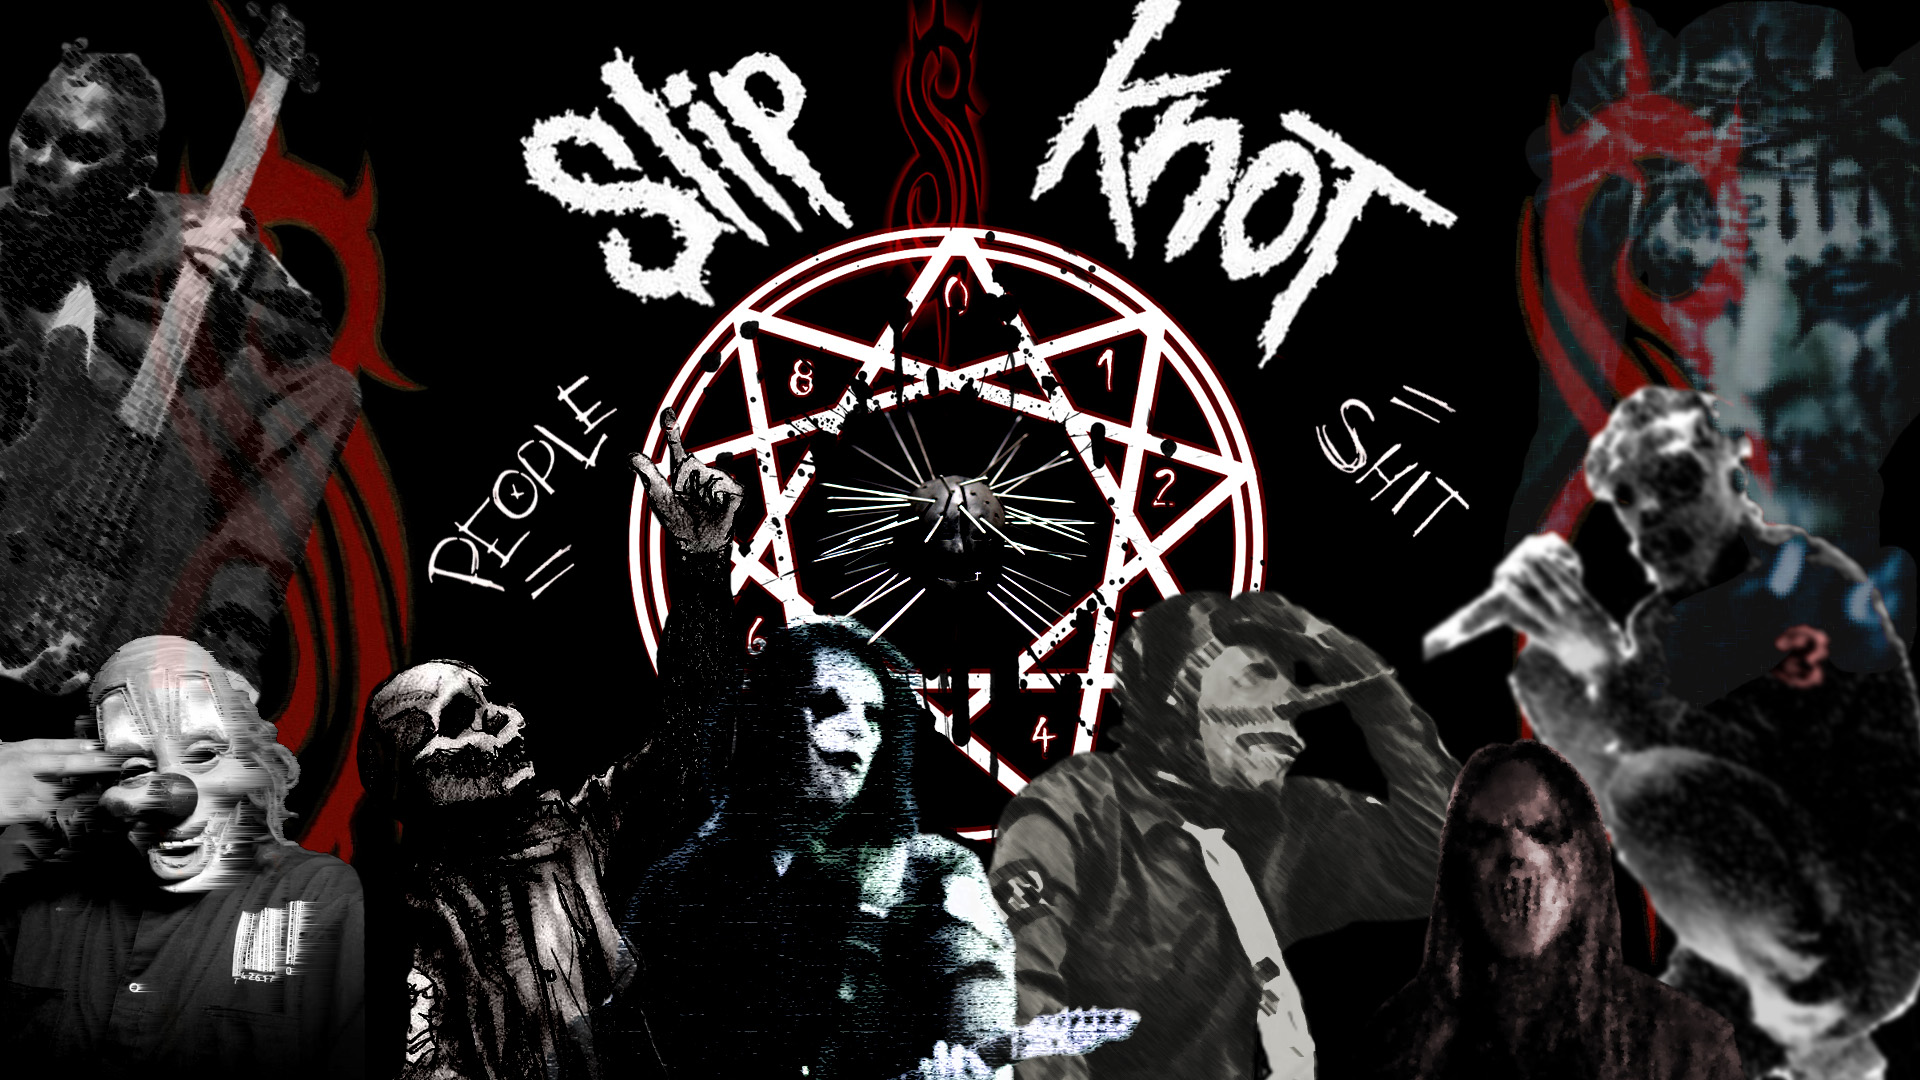 Free Slipknot Wallpaper